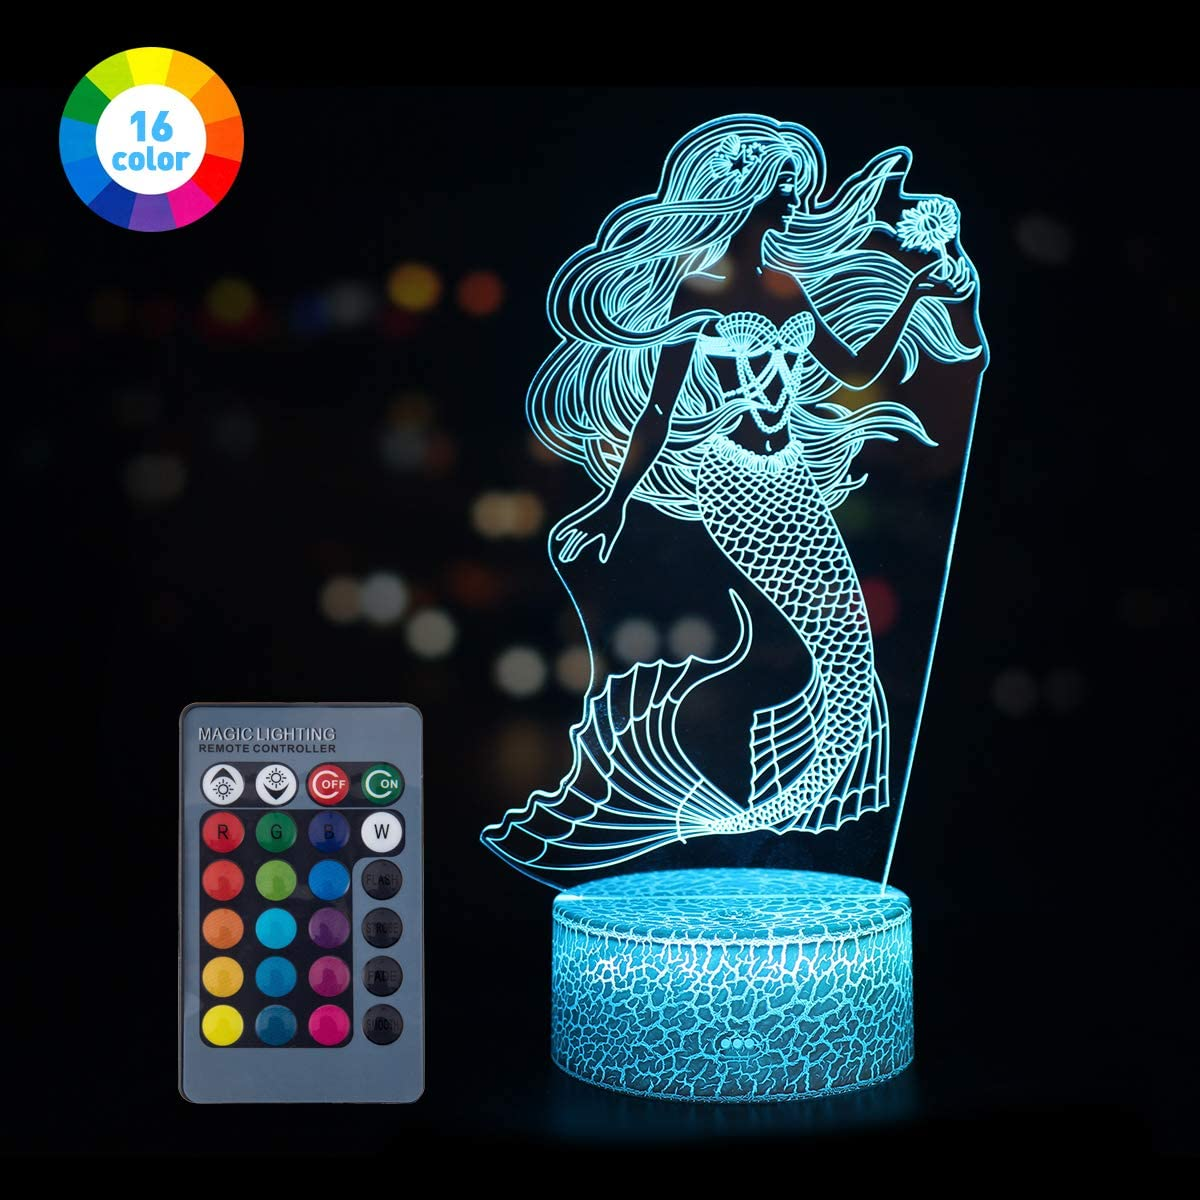 Koyya Mermaid Toys Night Light with Remote & Smart Touch 3D Lights 16 Colors Changeable Dimmable Mermaid Gifts Year Old Girl Gifts…